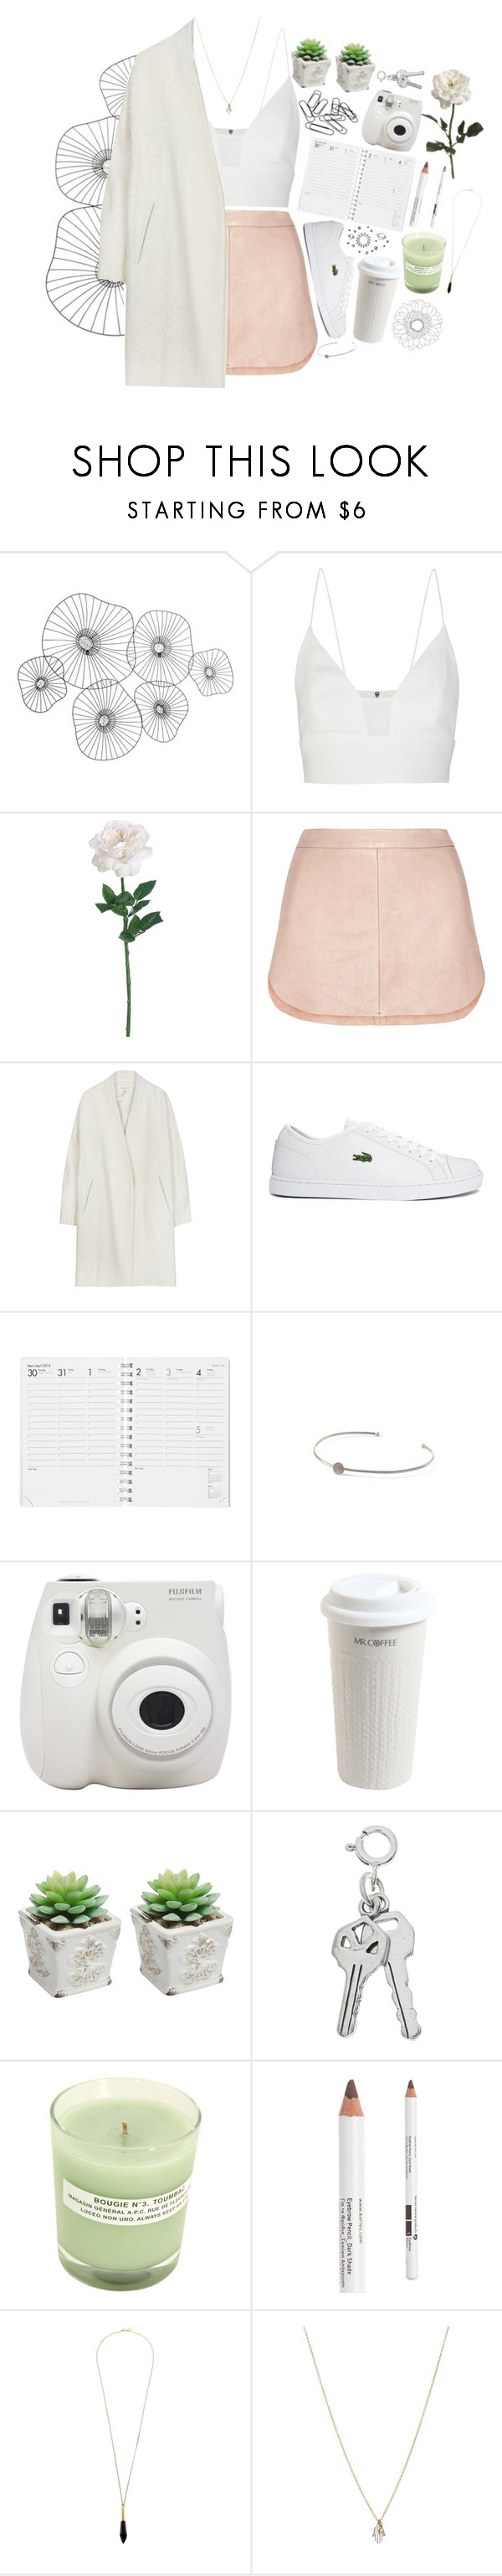 """Geen titel #226"" by sophievalk ❤ liked on Polyvore featuring Cyan Design, Narciso Rodriguez, Mason by Michelle Mason, Lacoste, Pernille Corydon, Mr. Coffee, A.P.C., Korres, Boutique by Lola and ASOS"